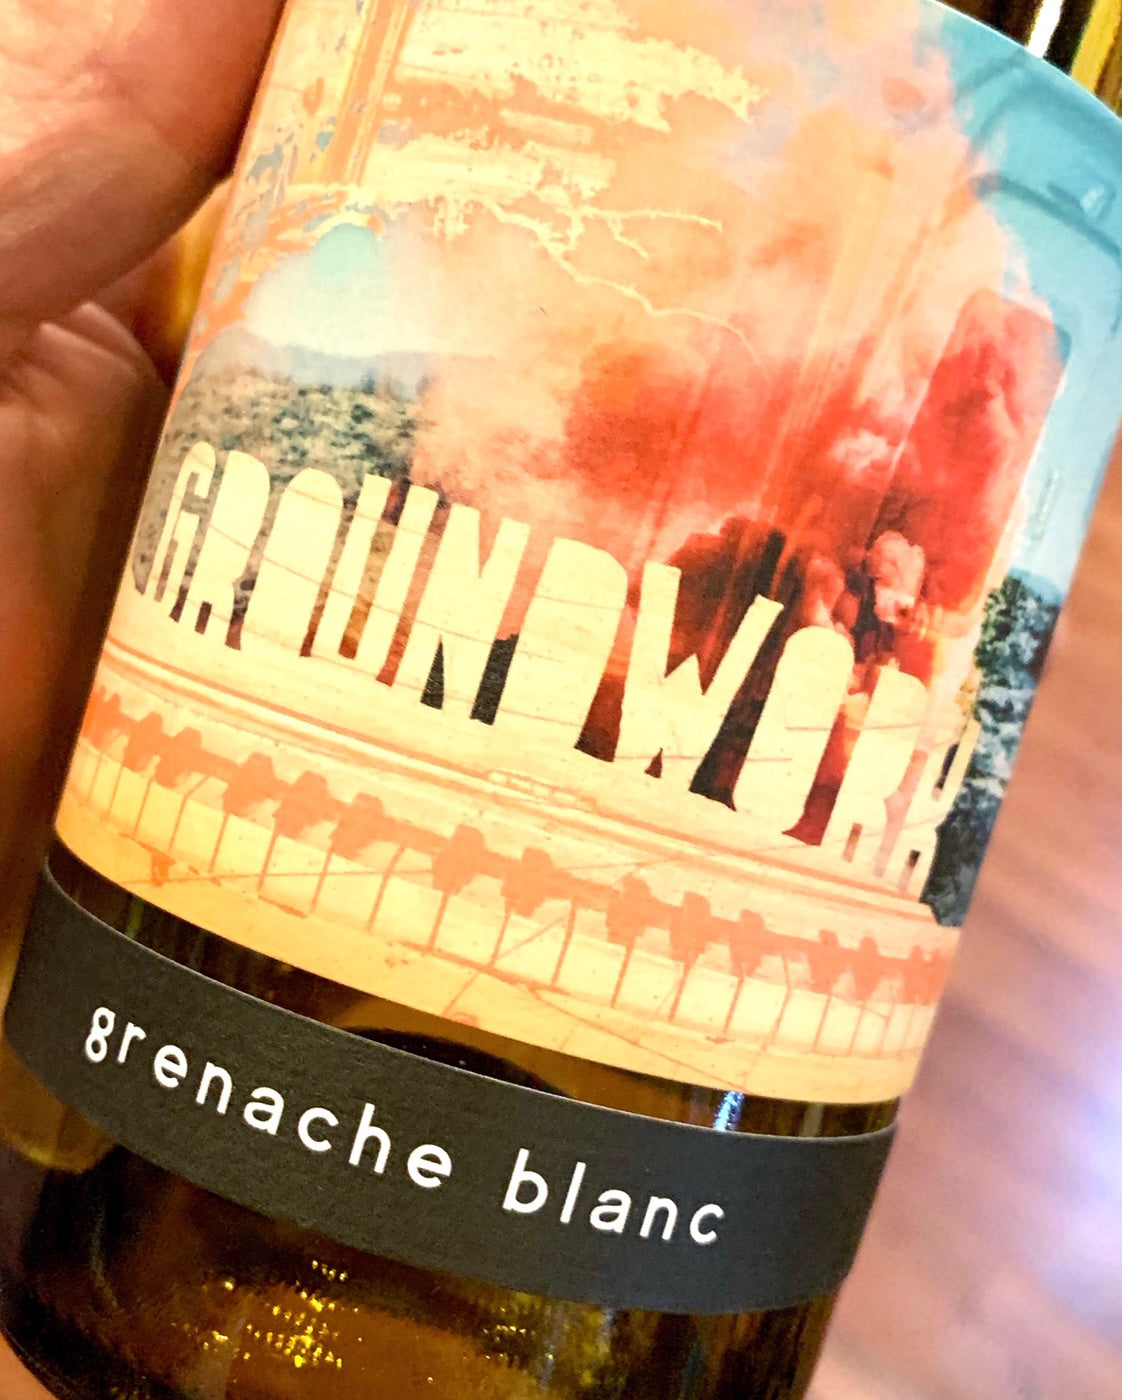 2018 Groundwork Grenache Blanc 750ml